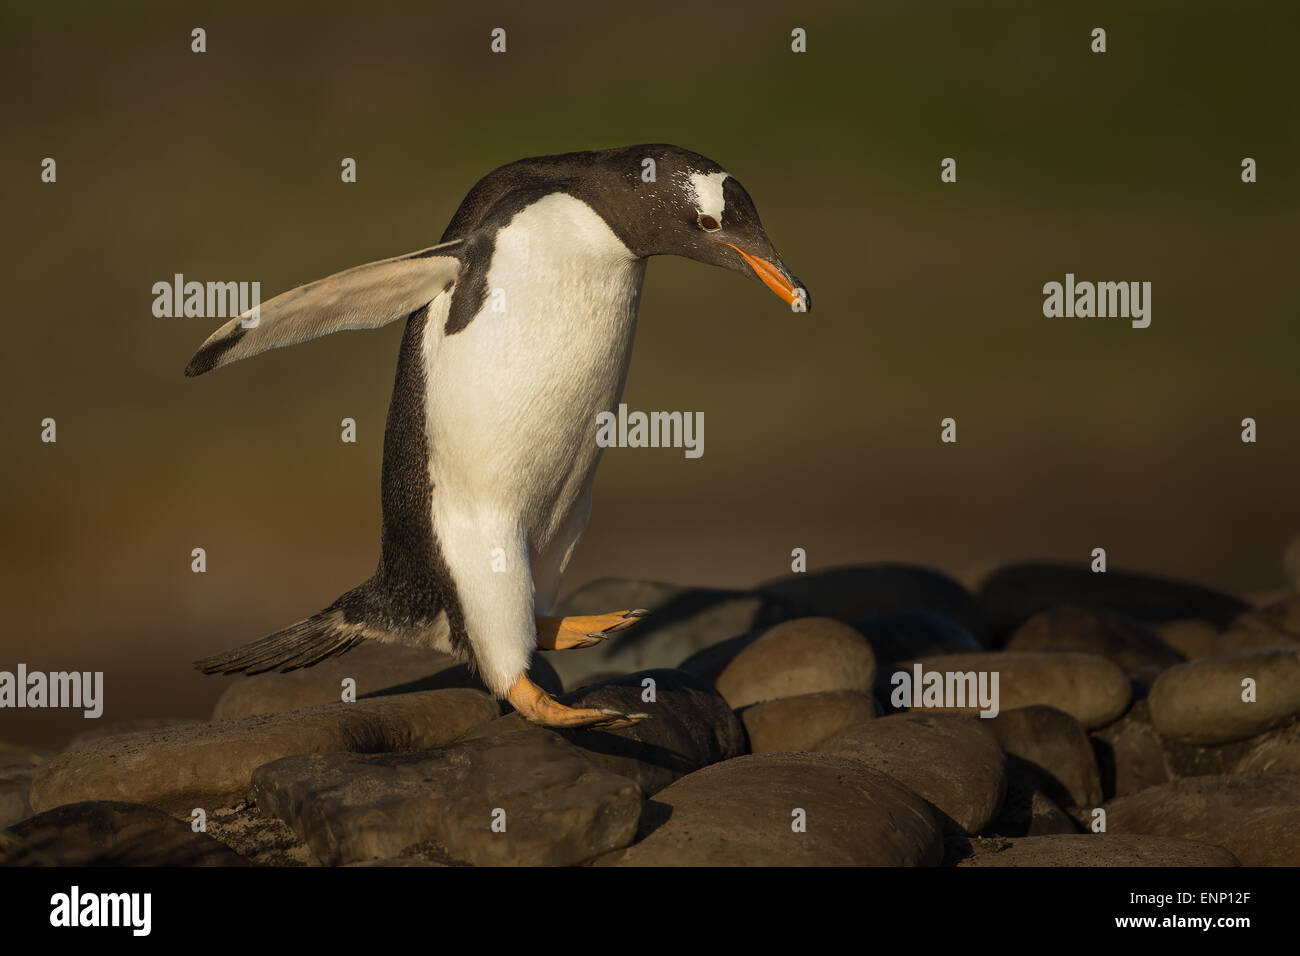 Gentoo penguin hopping on stones, Falkland islands - Stock Image